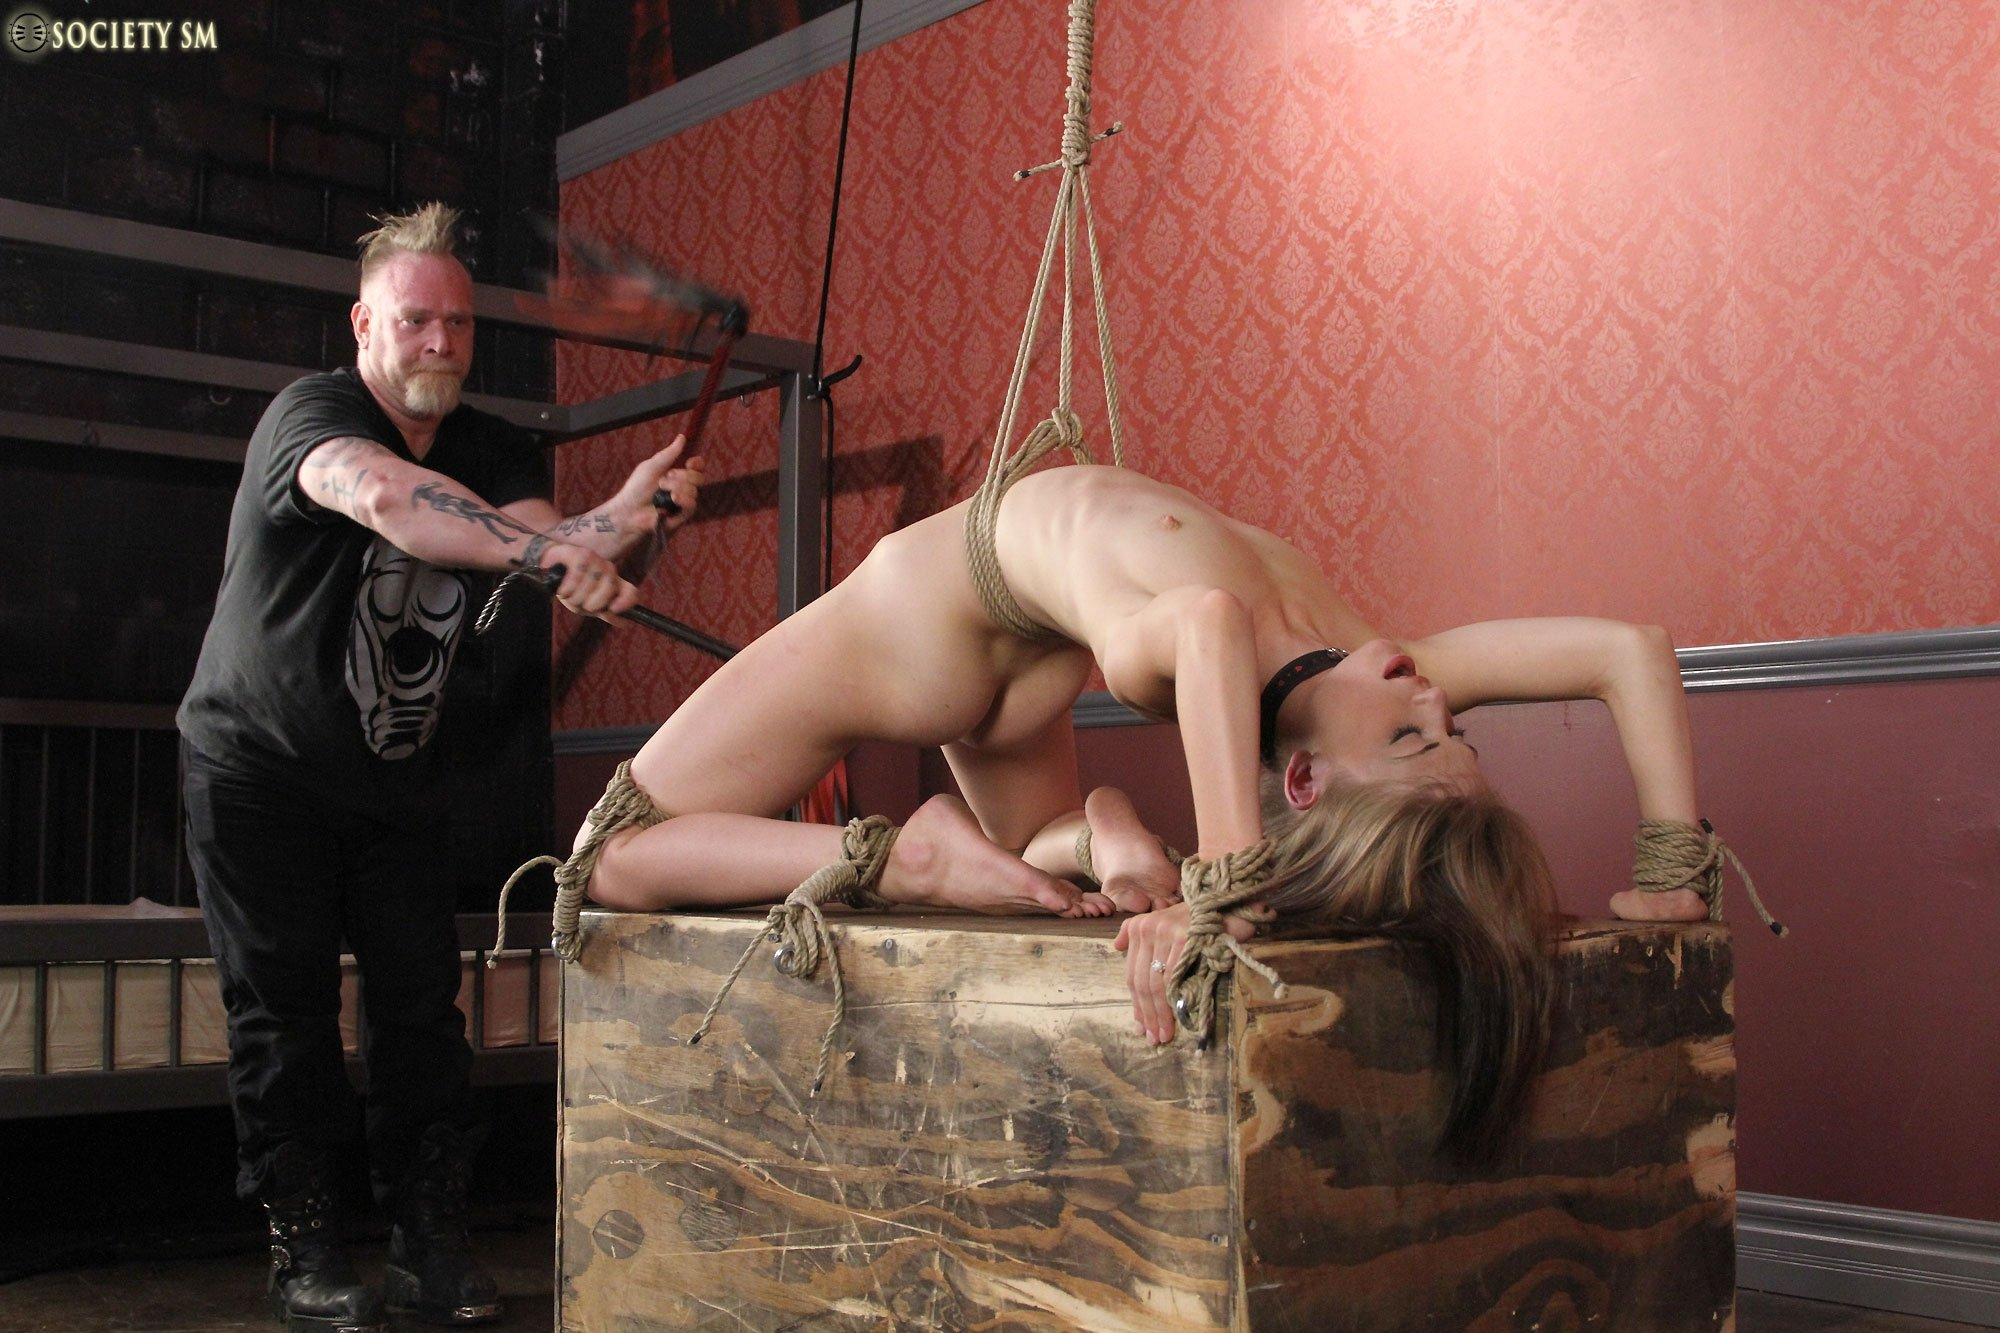 Bdsm info and learning